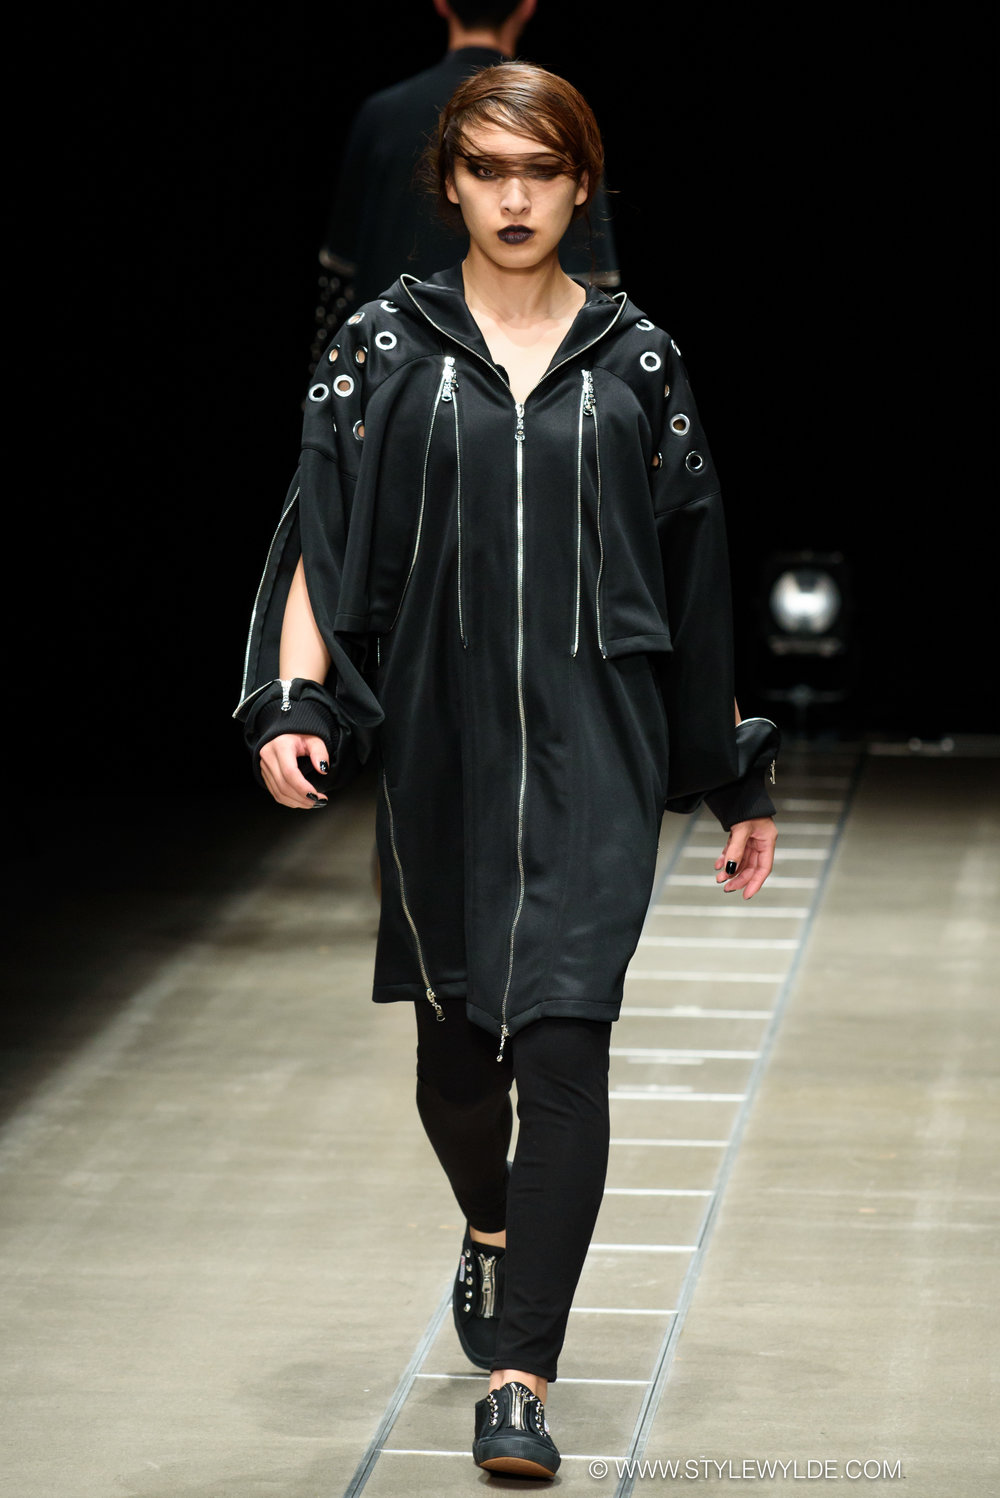 stylewylde_acuod_by_chanu_SS18_runway-22.jpg